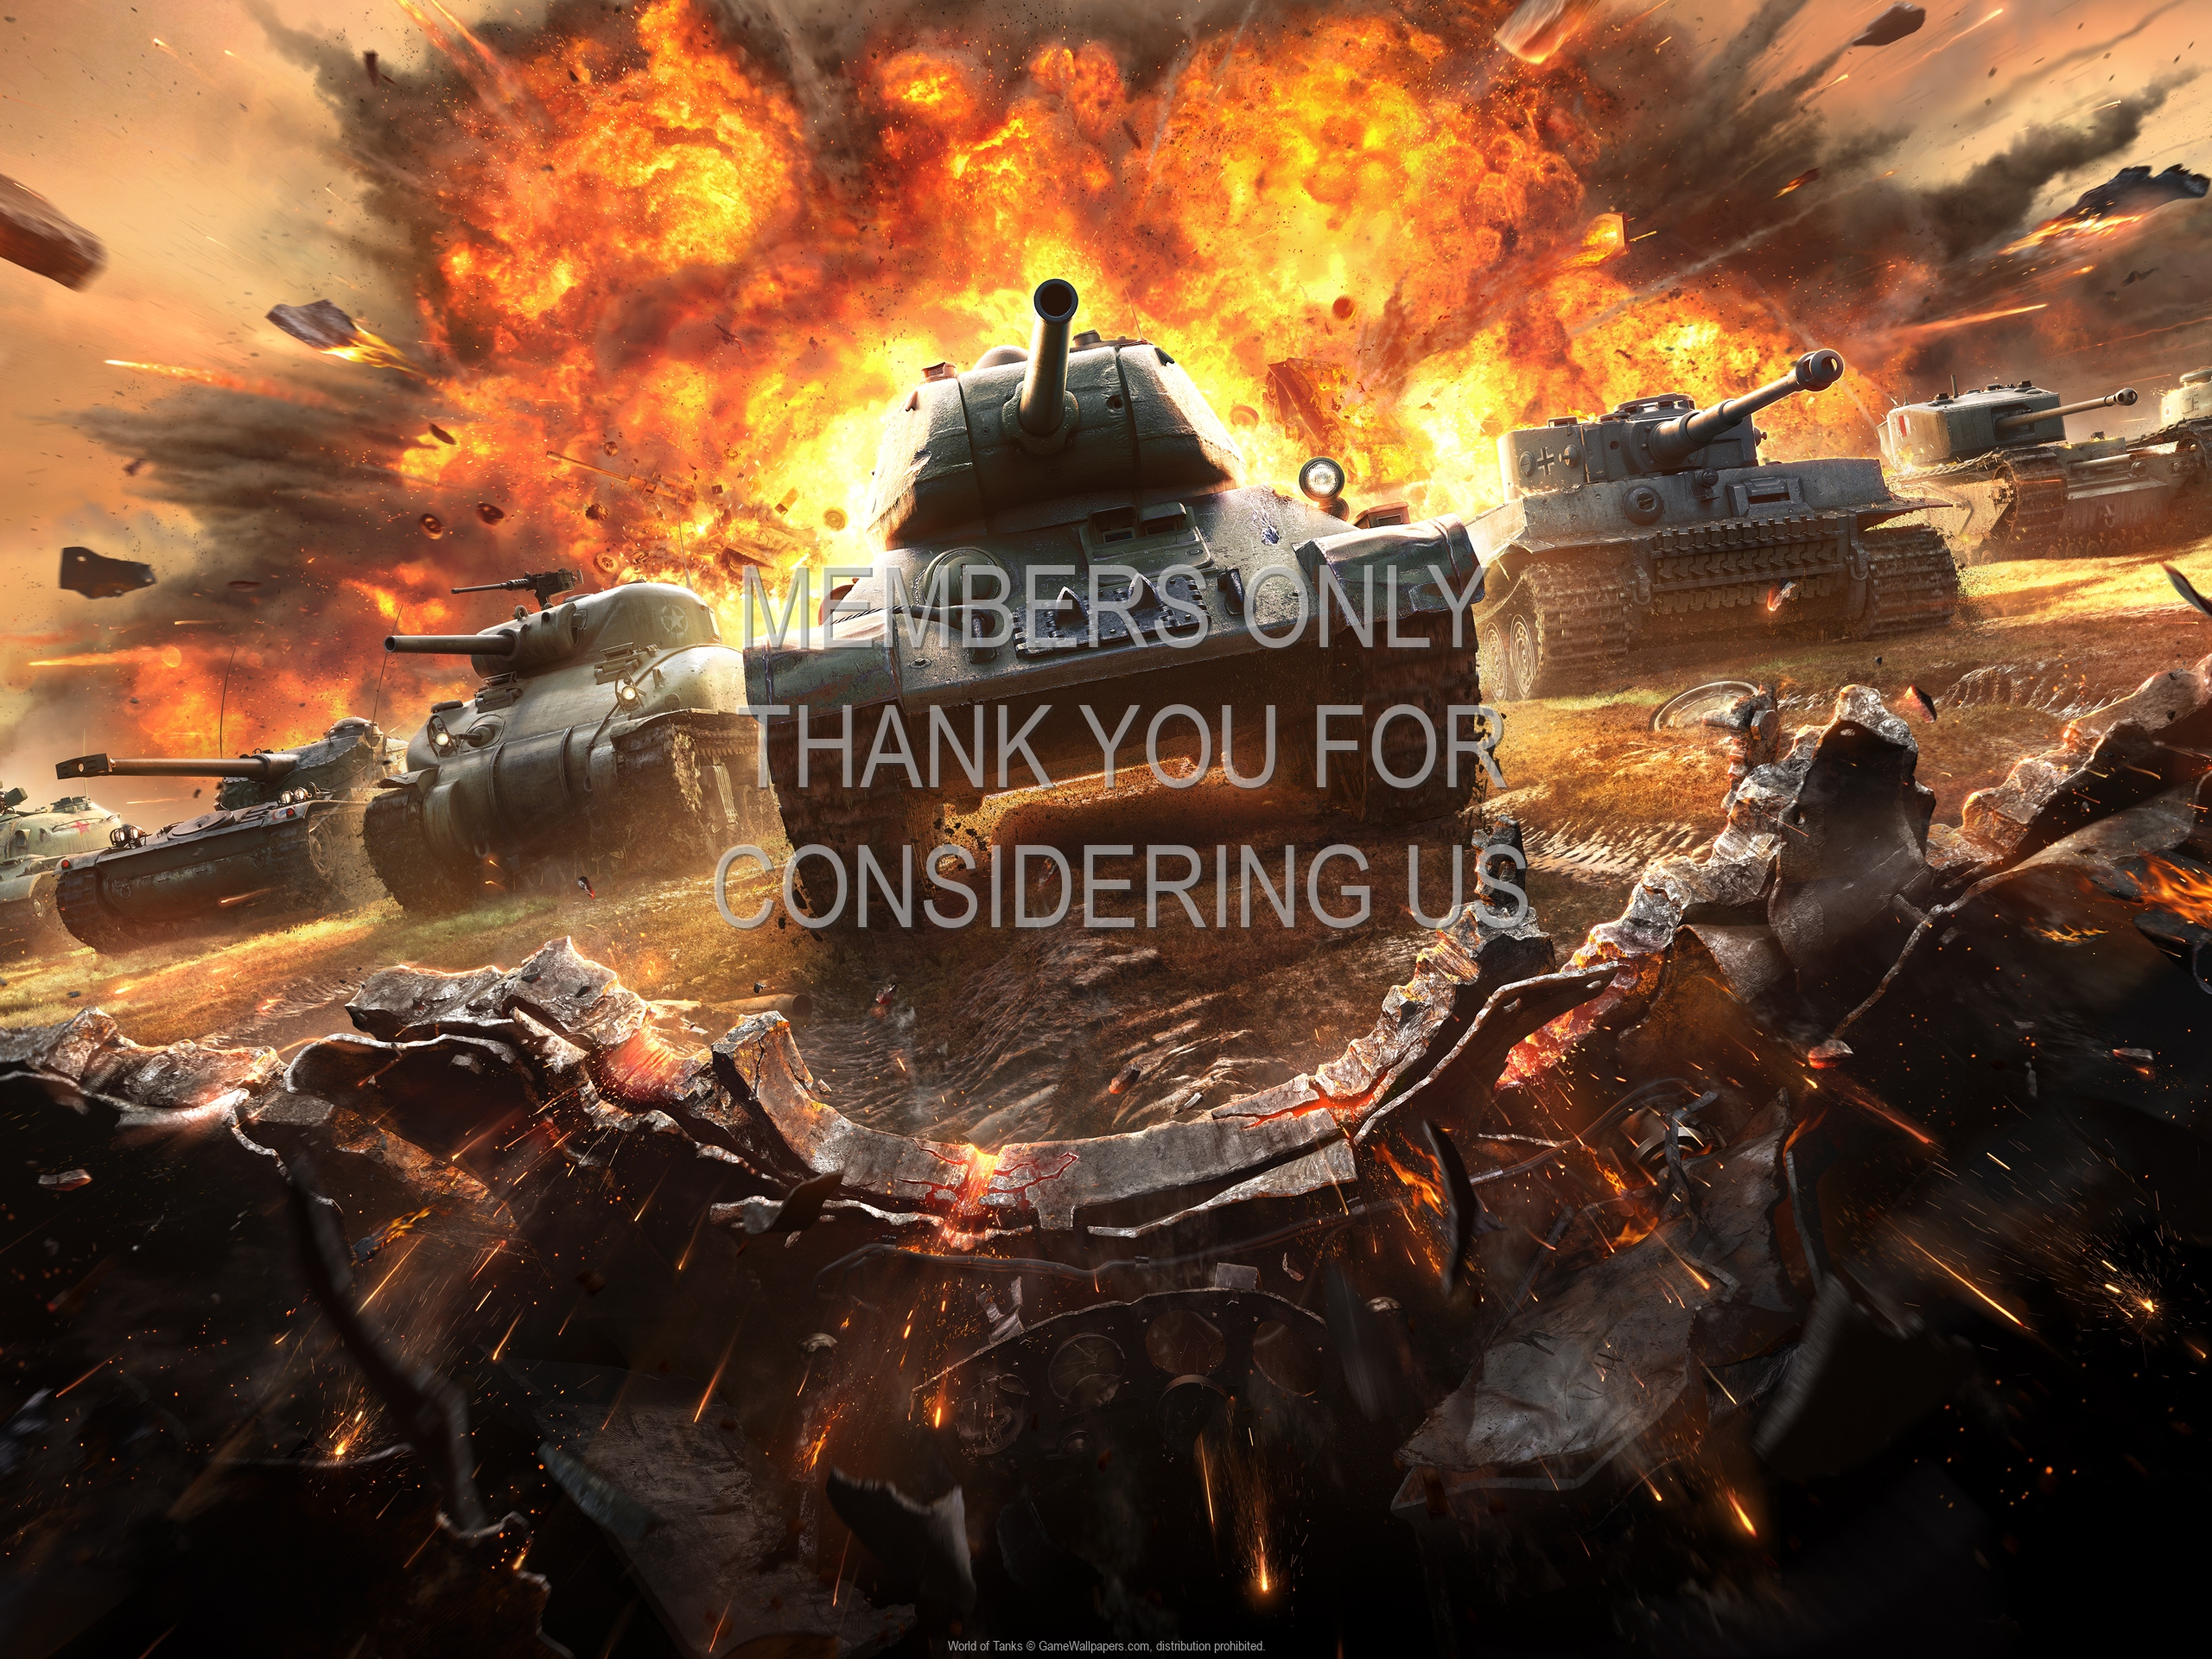 World of Tanks 1920x1080 Mobile wallpaper or background 13